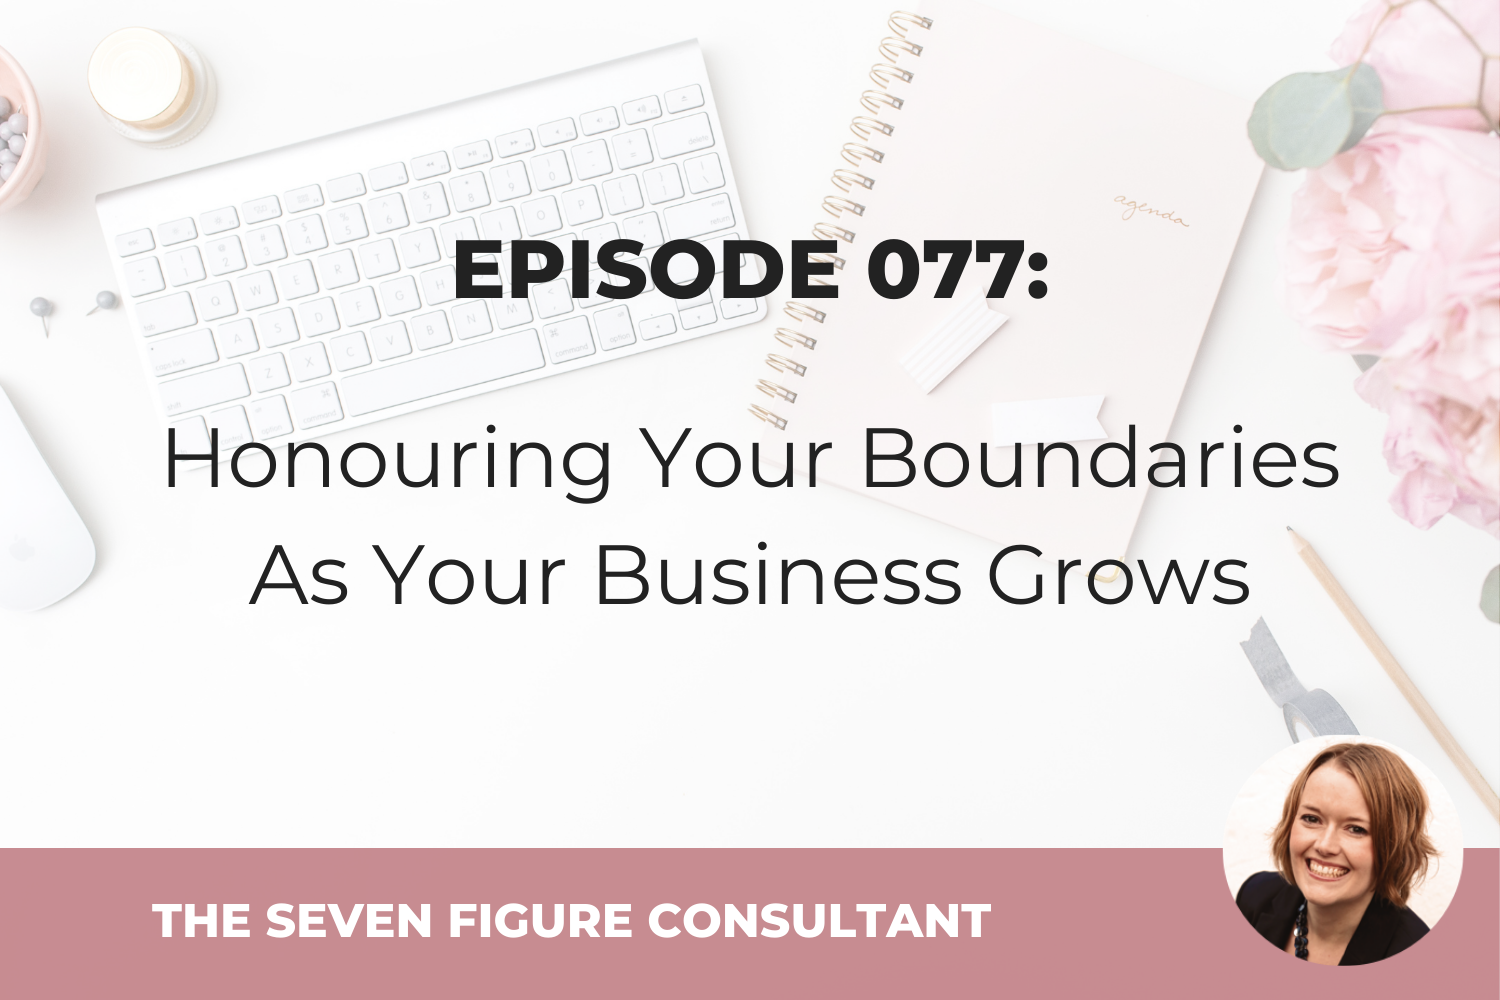 Episode 077: Honouring Your Boundaries As Your Business Grows